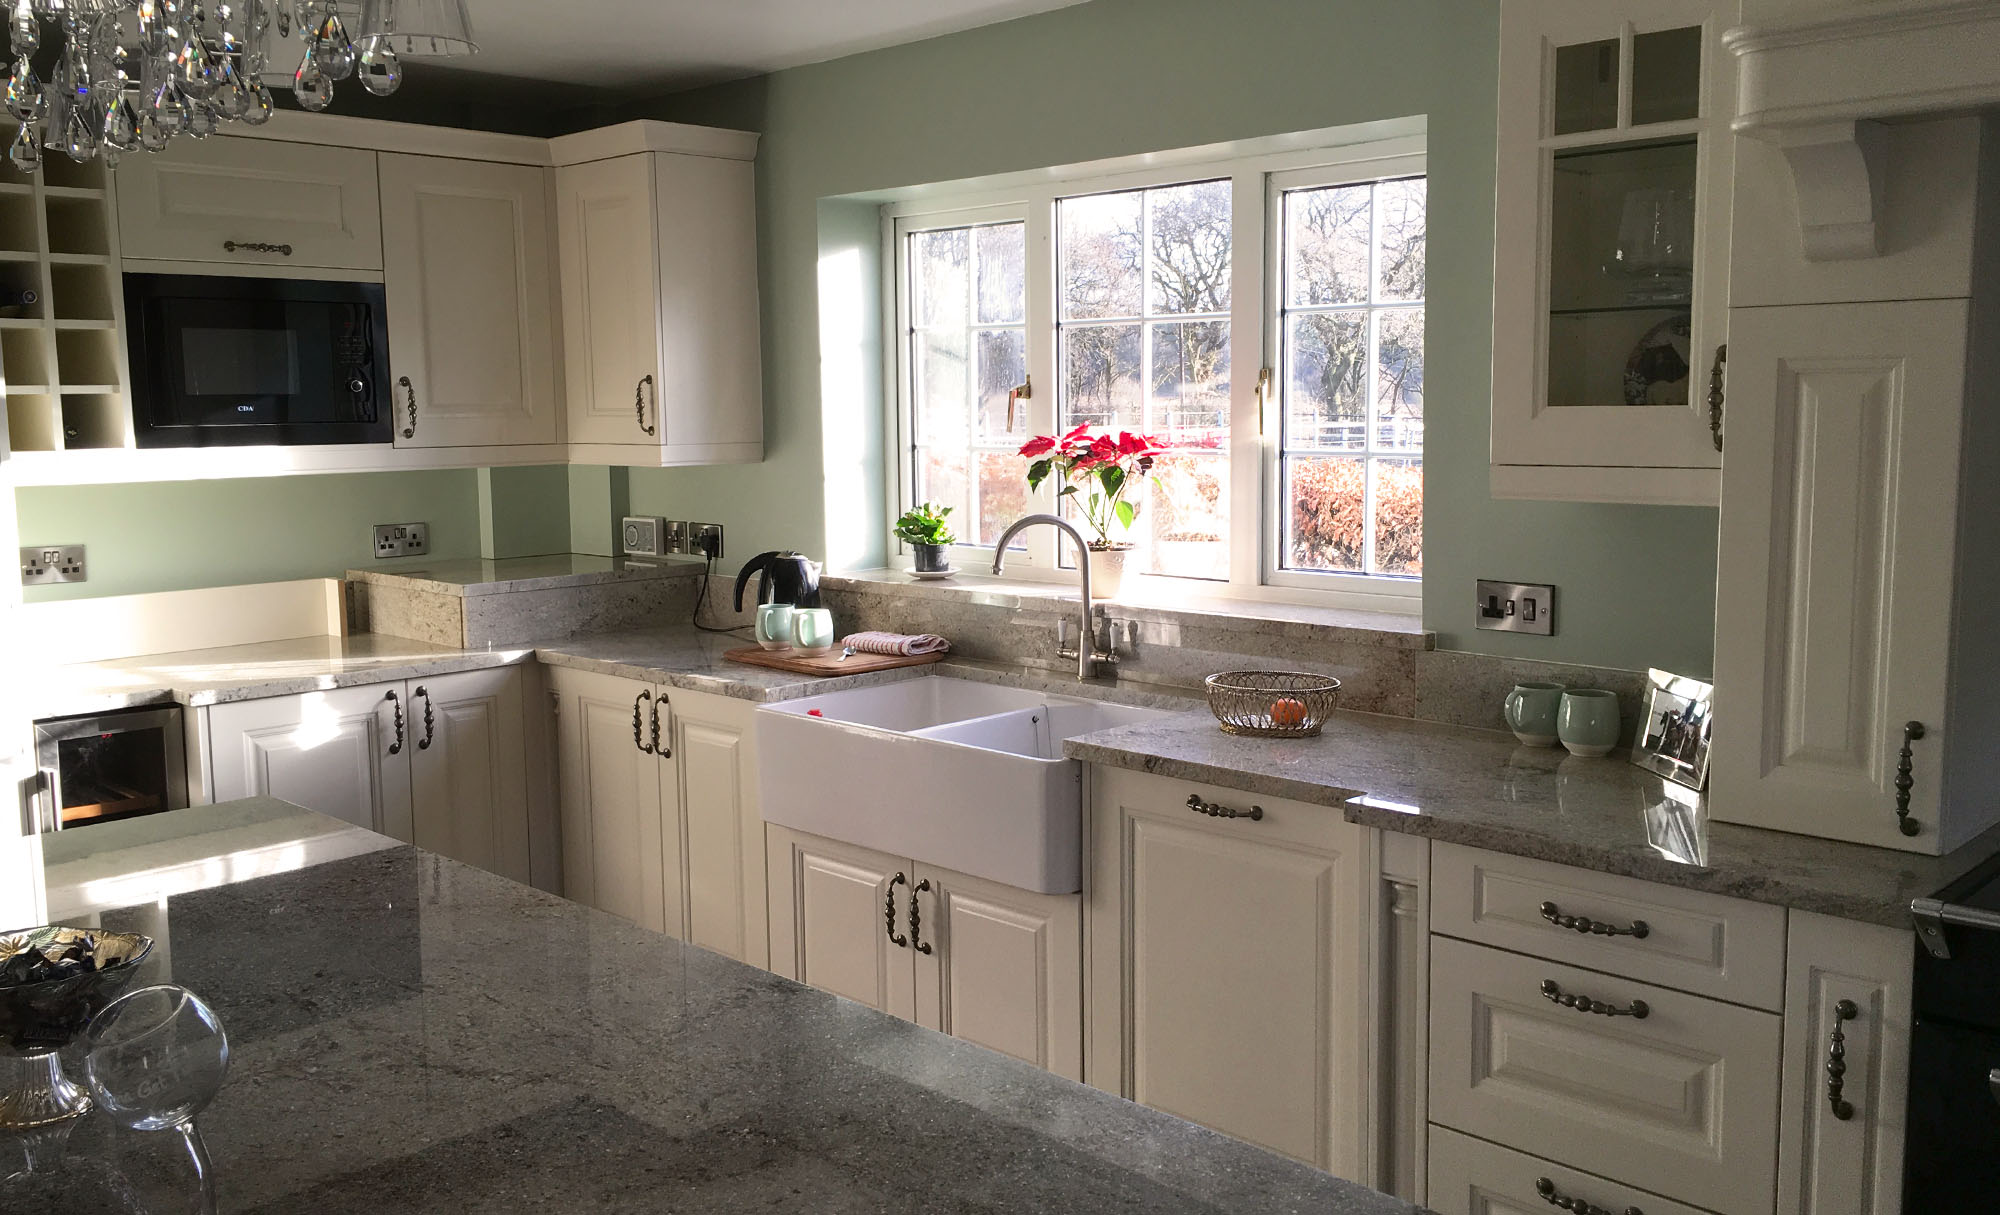 jefferson-ivory-kitchen-counter-sink-window